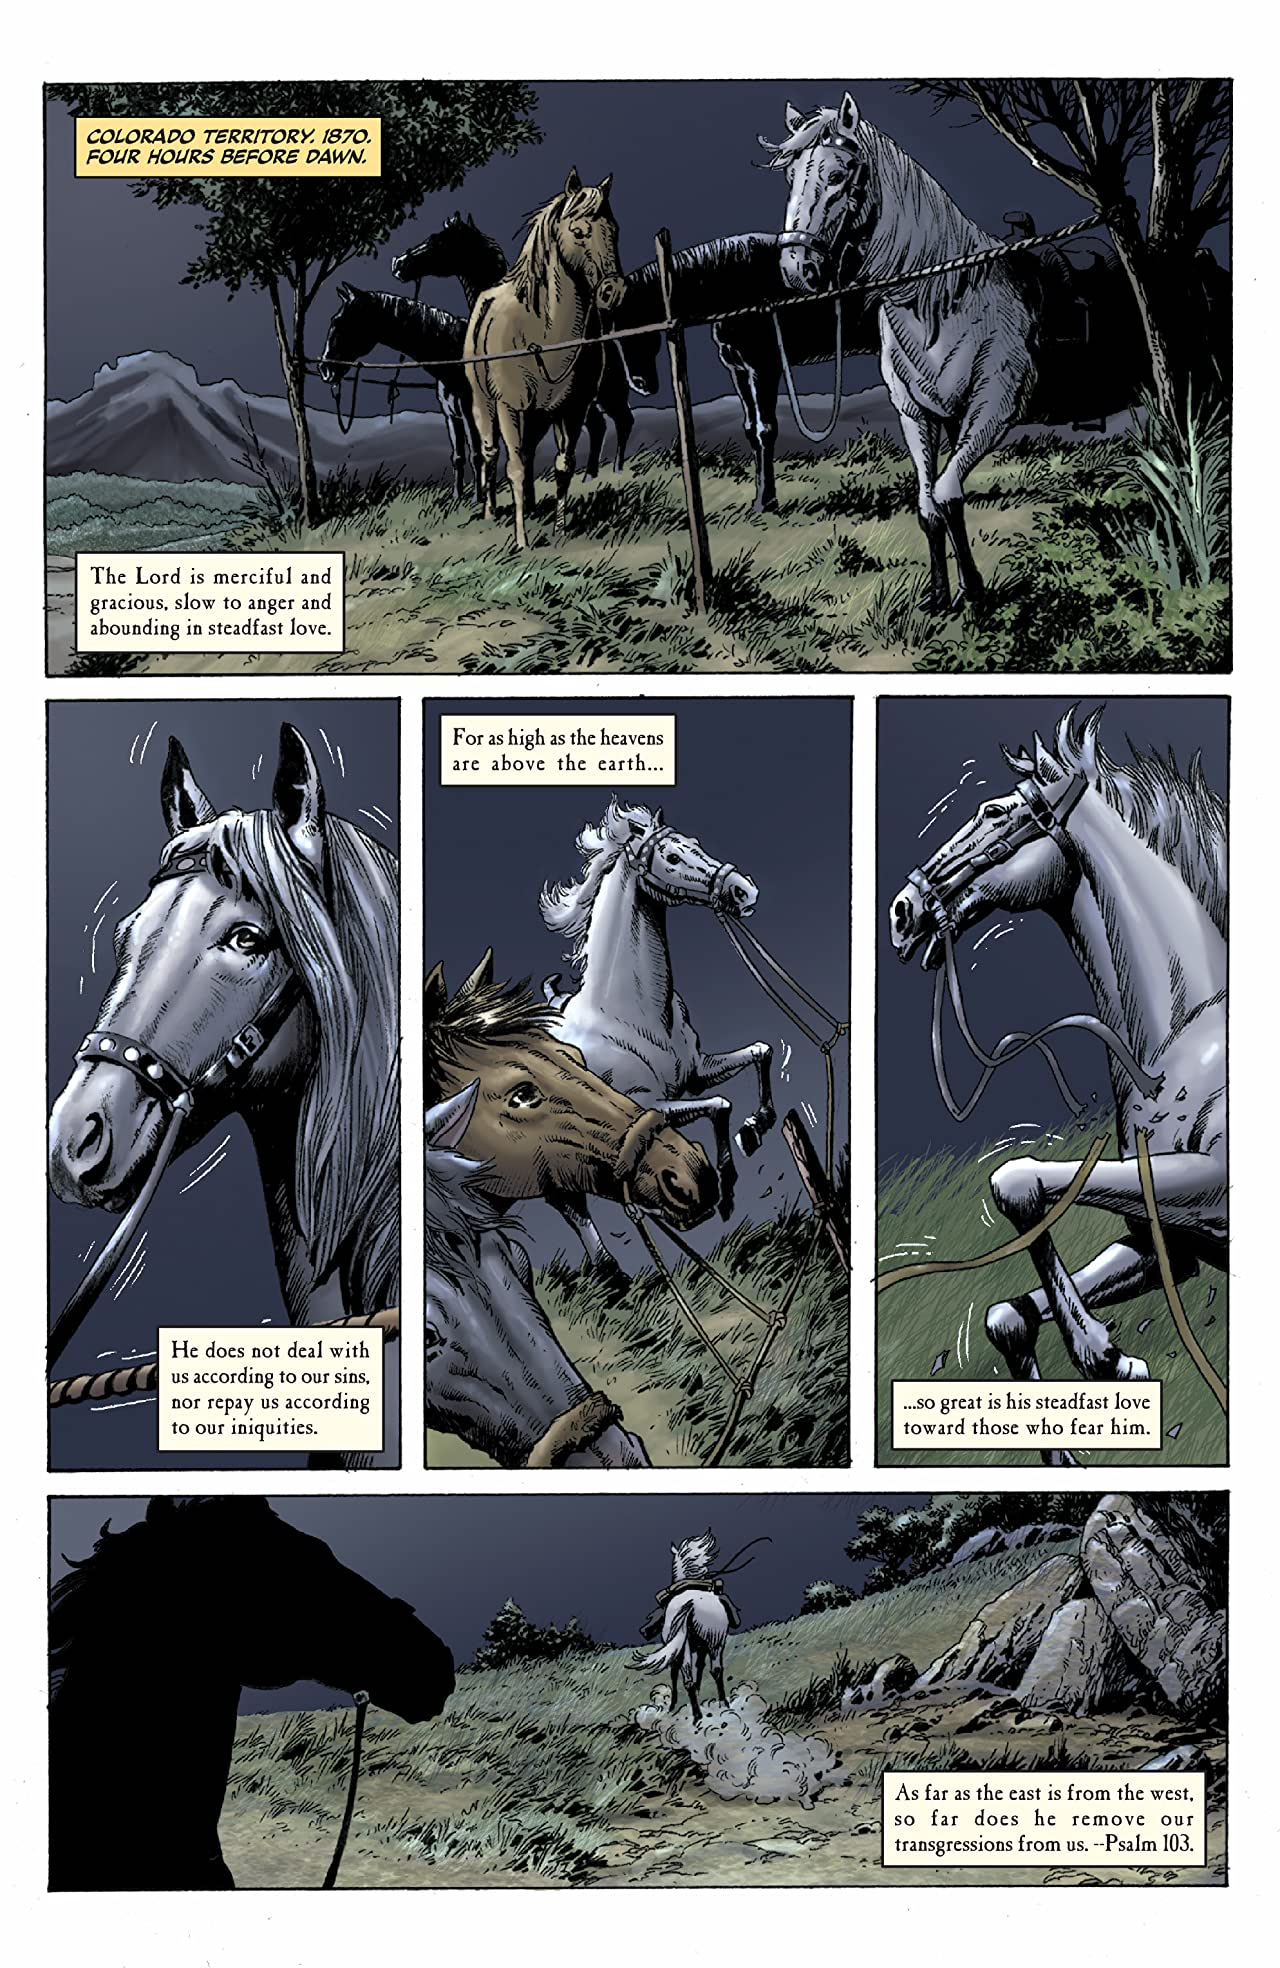 The Lone Ranger Vol. 2 #11